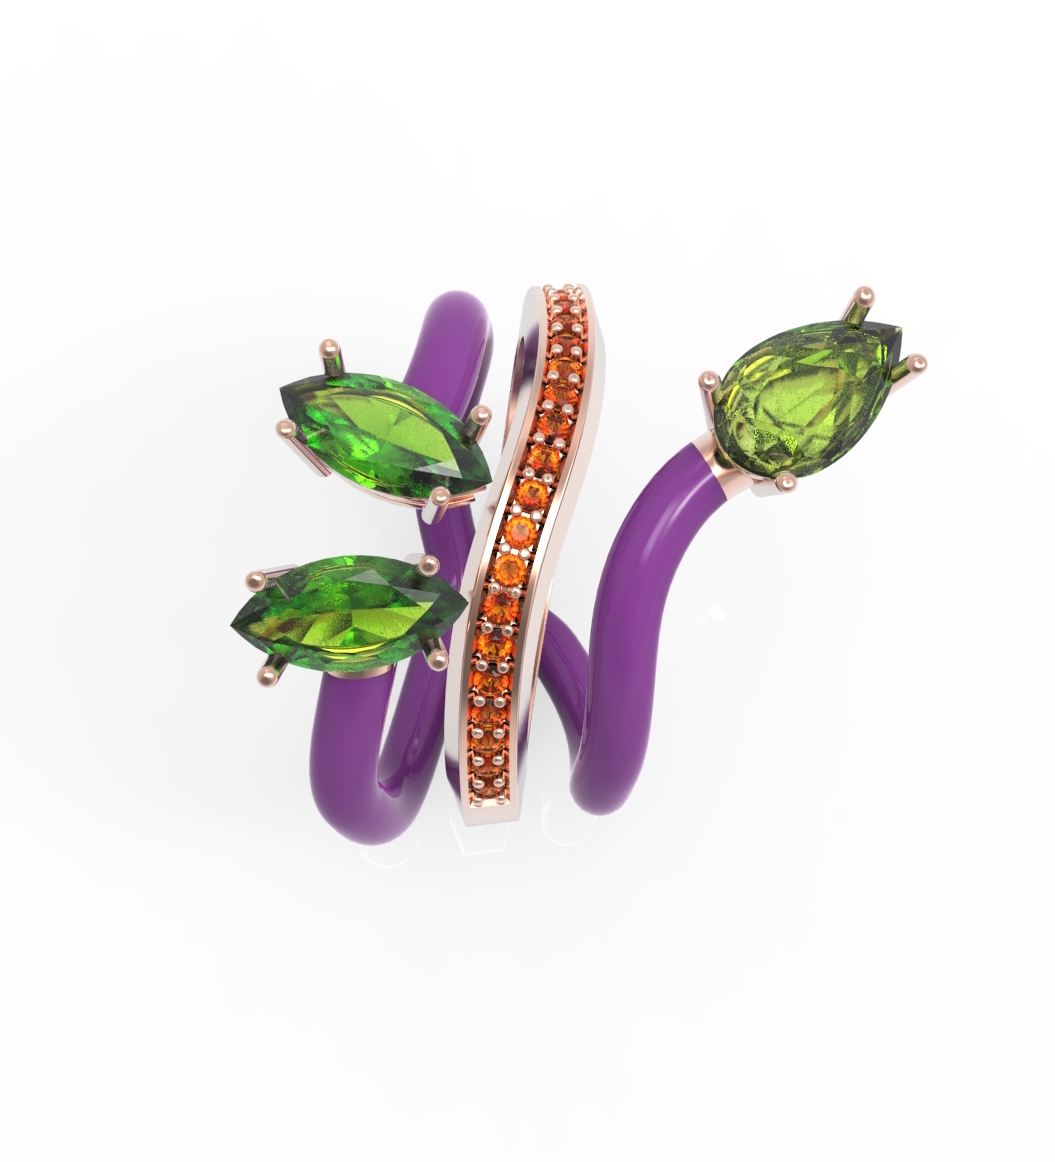 """A ring from Bea Bongiasca """"You're so vine!"""" collection"""